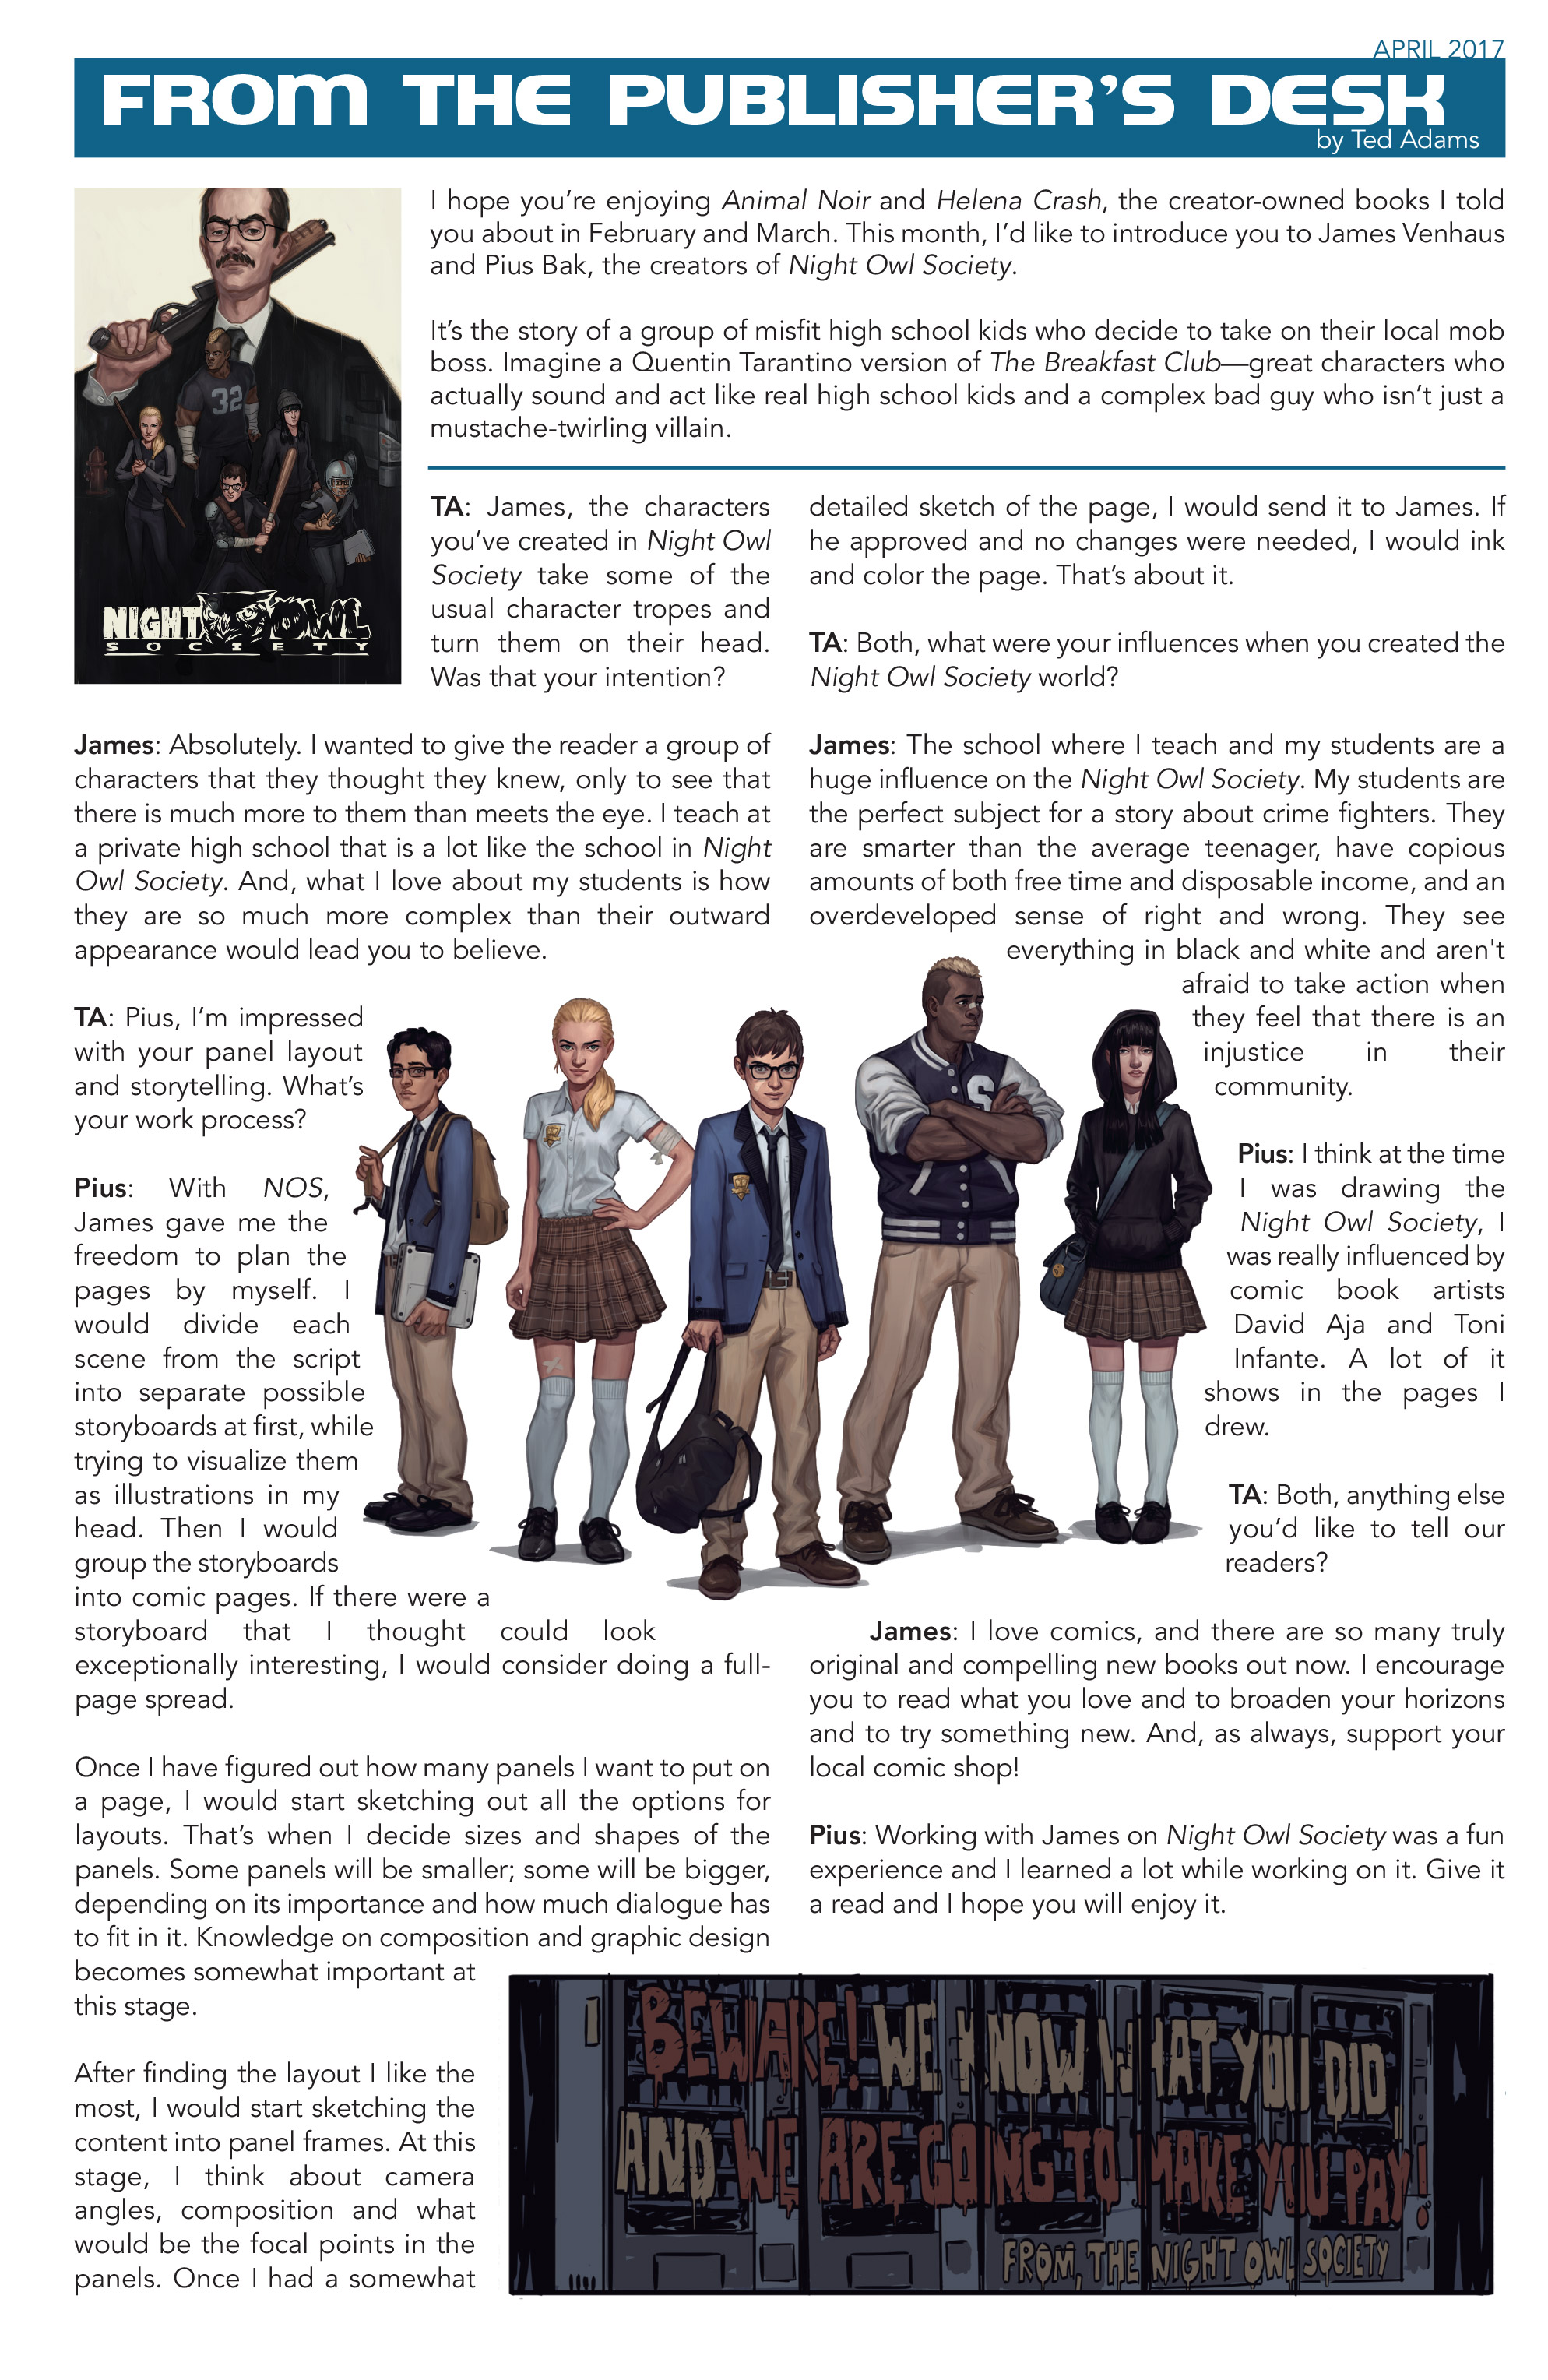 Read online D4VEocracy comic -  Issue #4 - 27